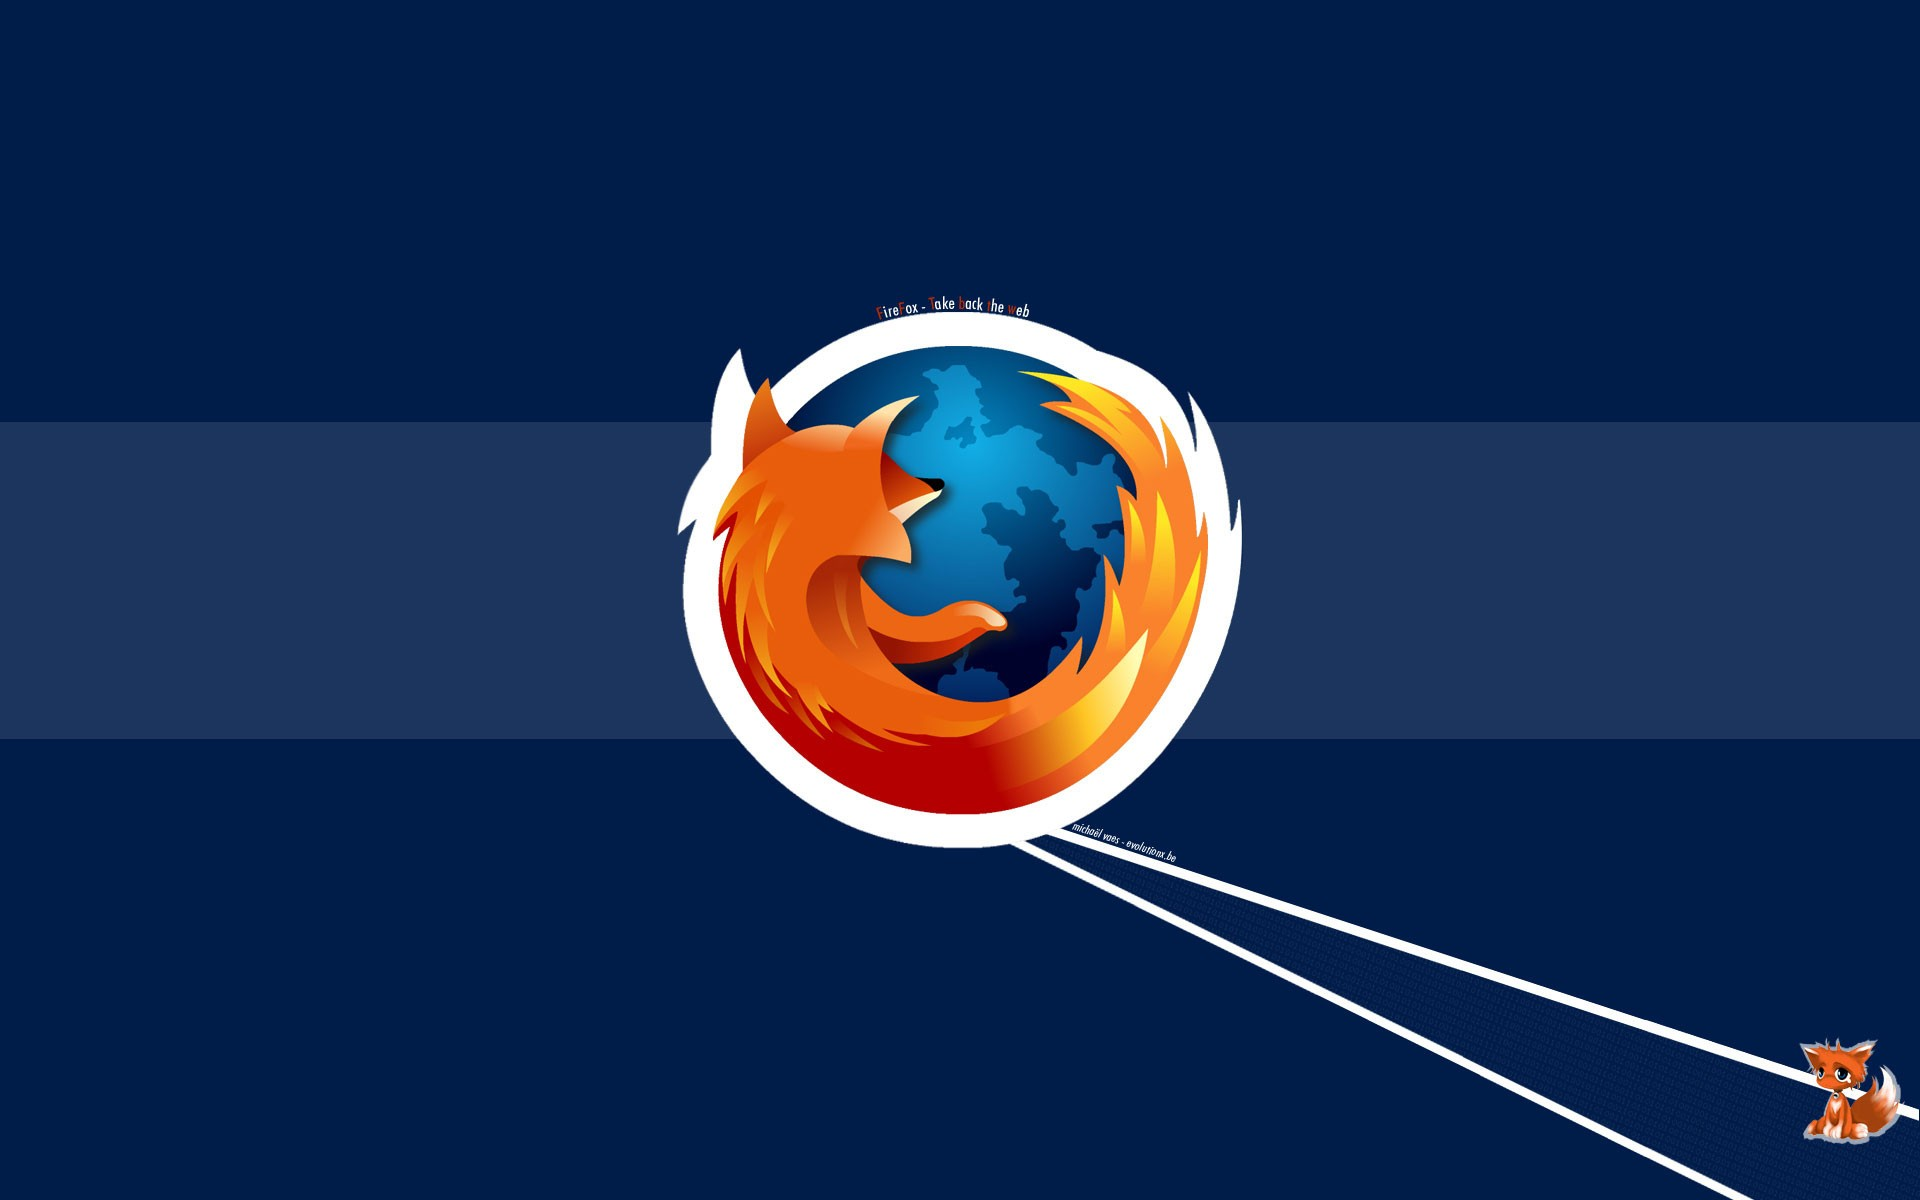 The logo of the Firefox browser and a small drawn Fox